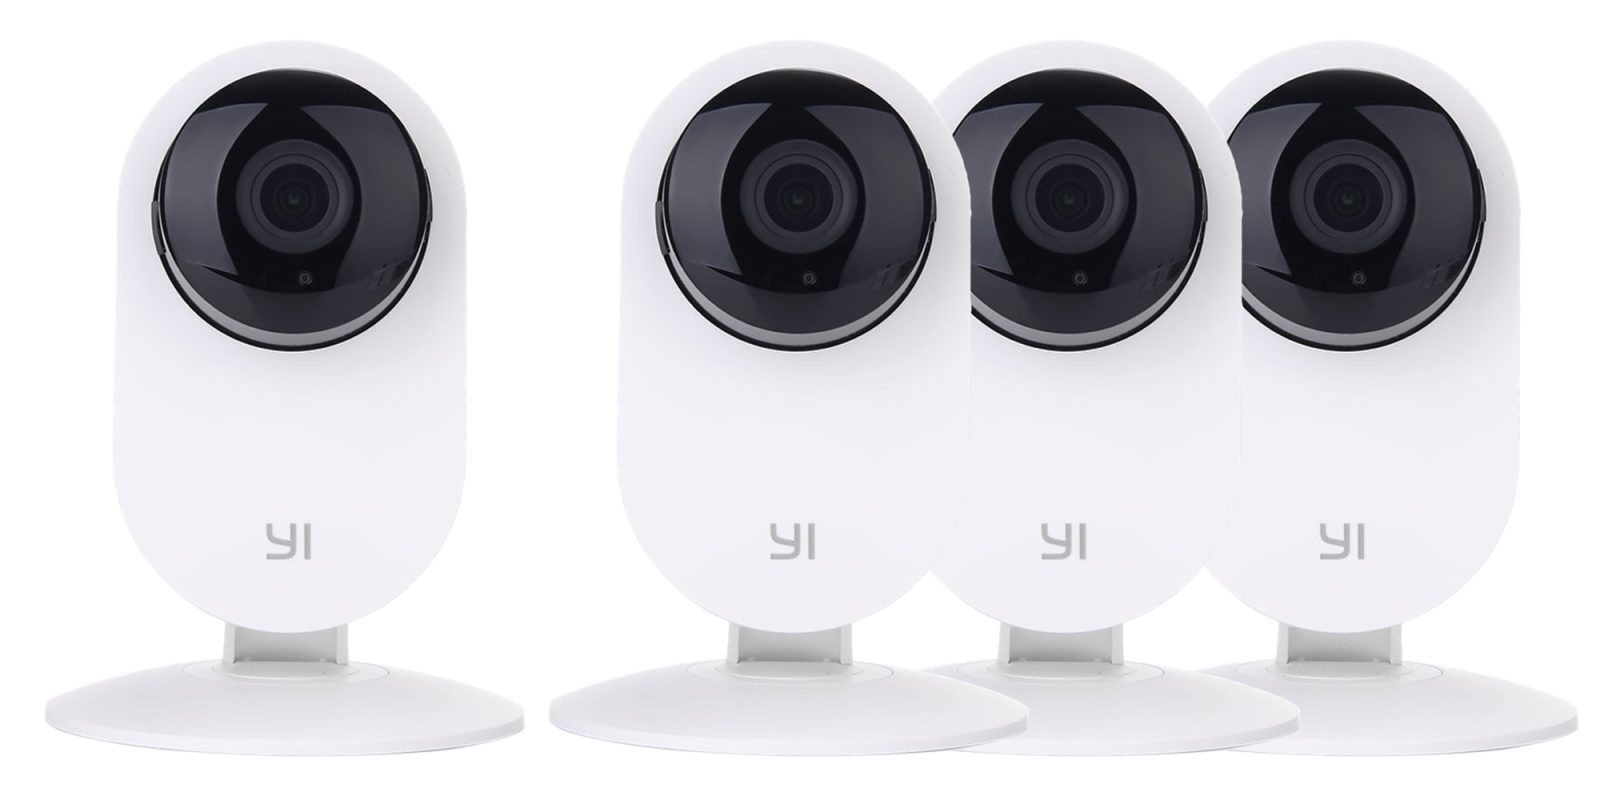 Monitor your home from anywhere w/ this 4-pack of Yi Wireless Cameras for $105